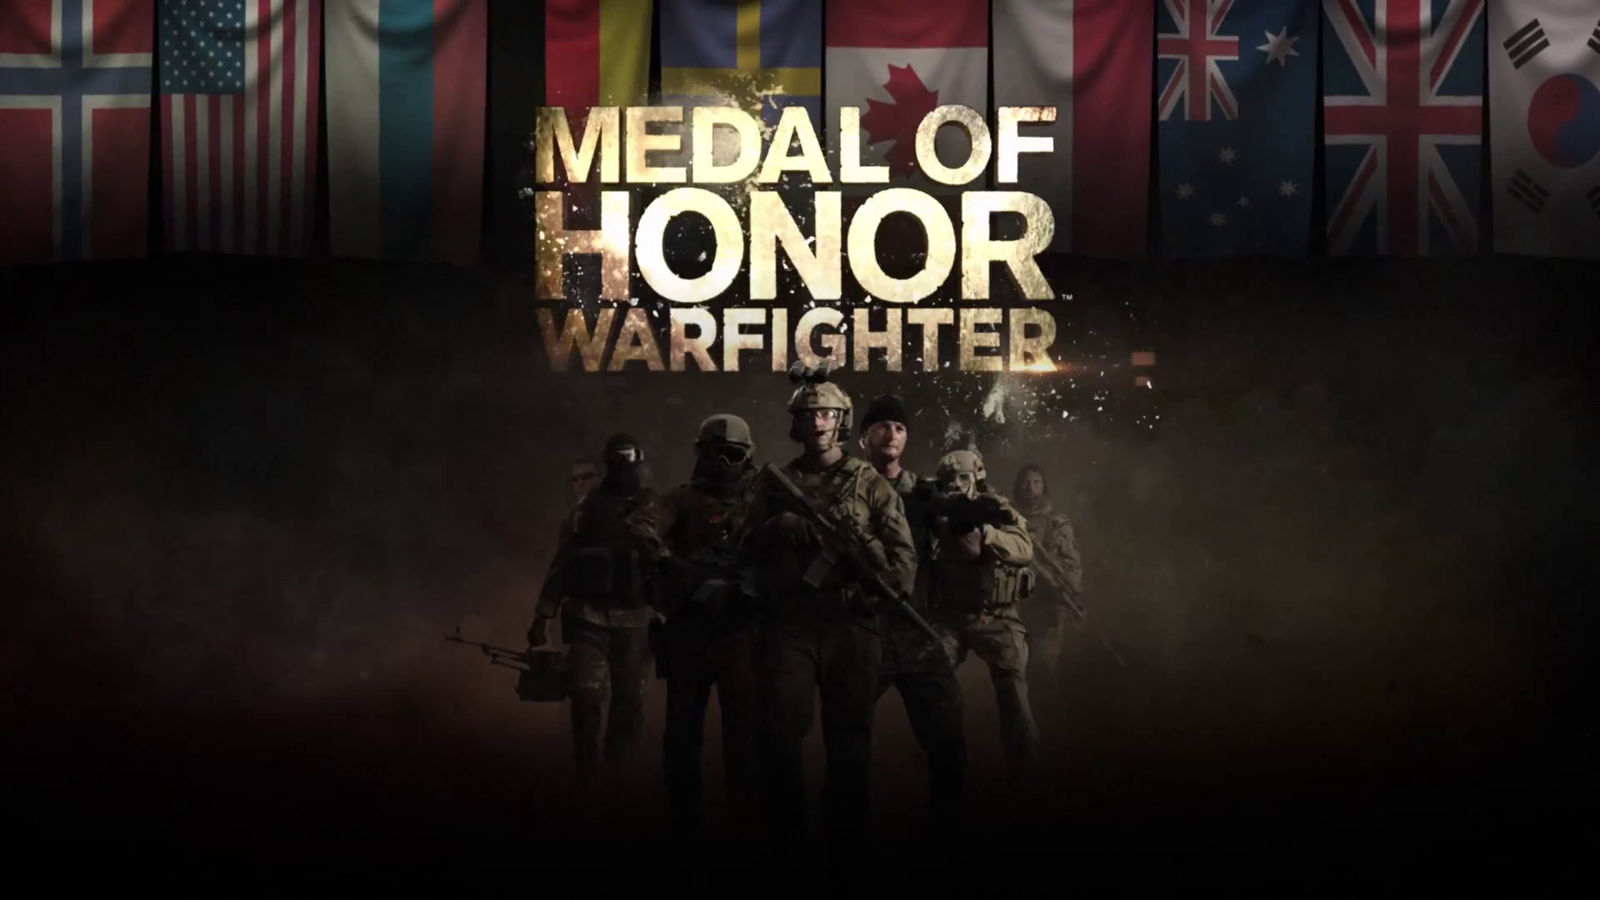 Free Download Hd Wallpapers Medal Of Honor Warfighter Hd